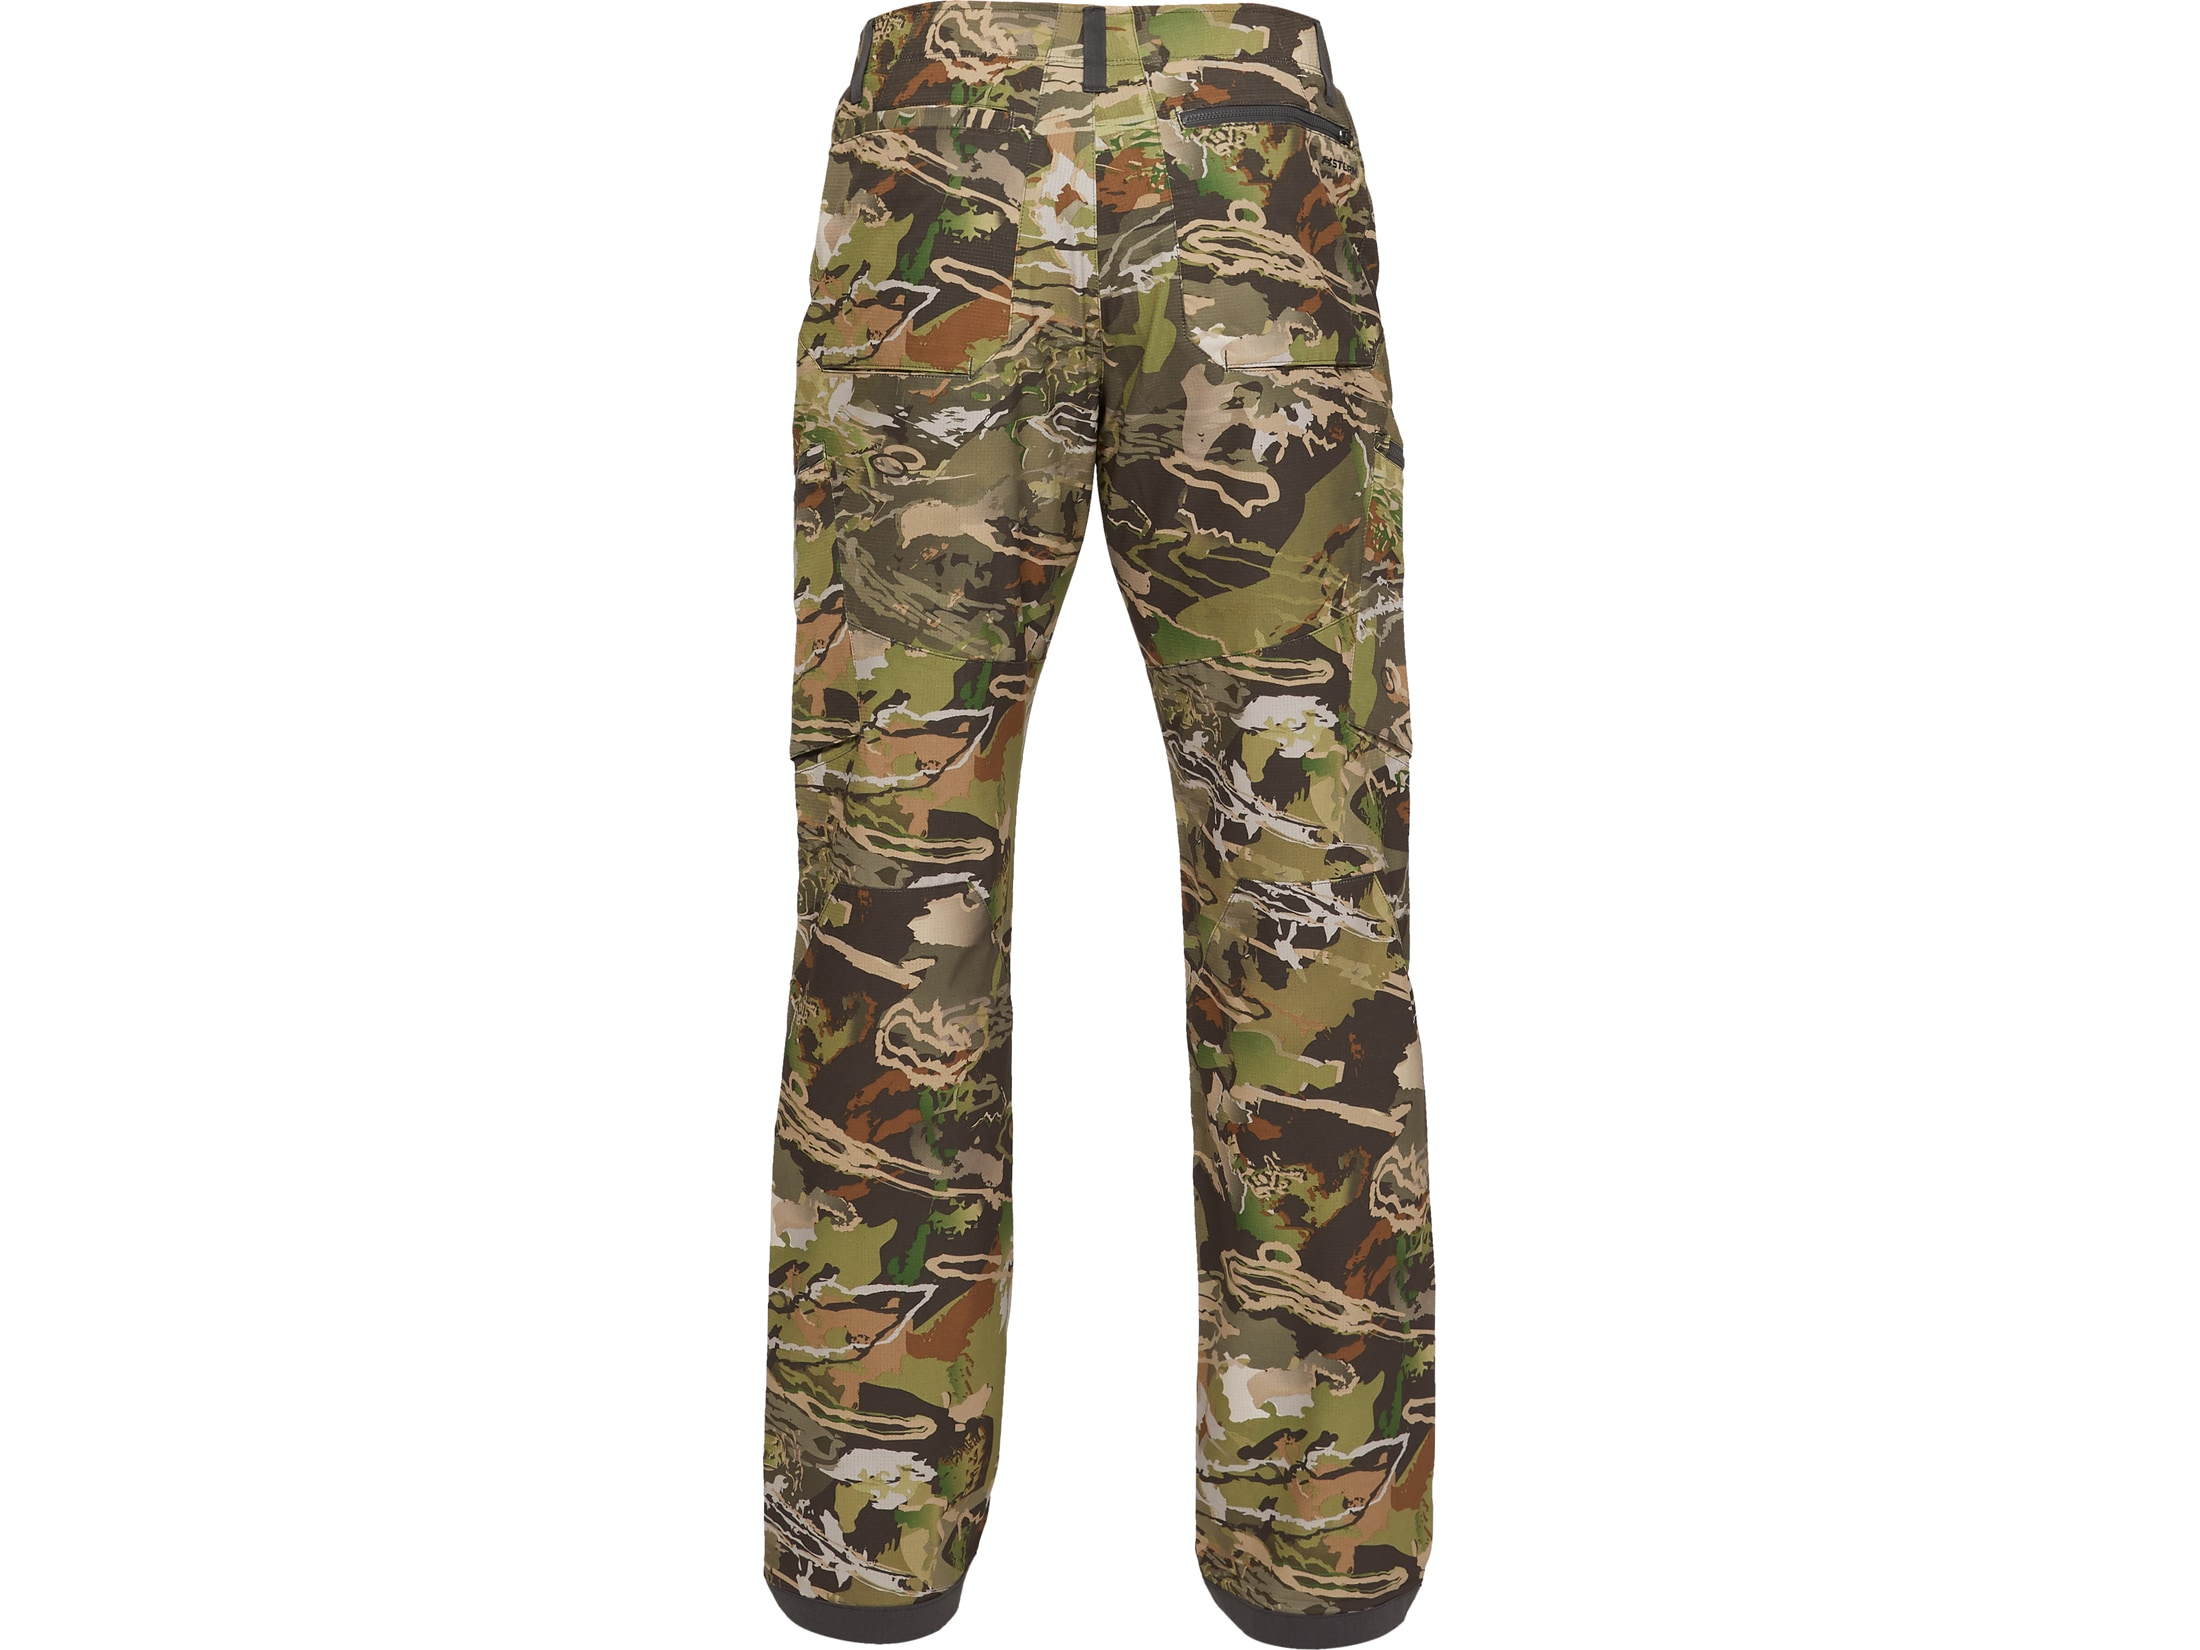 Ruina Campeonato aborto  940 /Black Under Armour Mens Field Ops Pants 34/32 Ua Forest Camo Vêtements  Homme